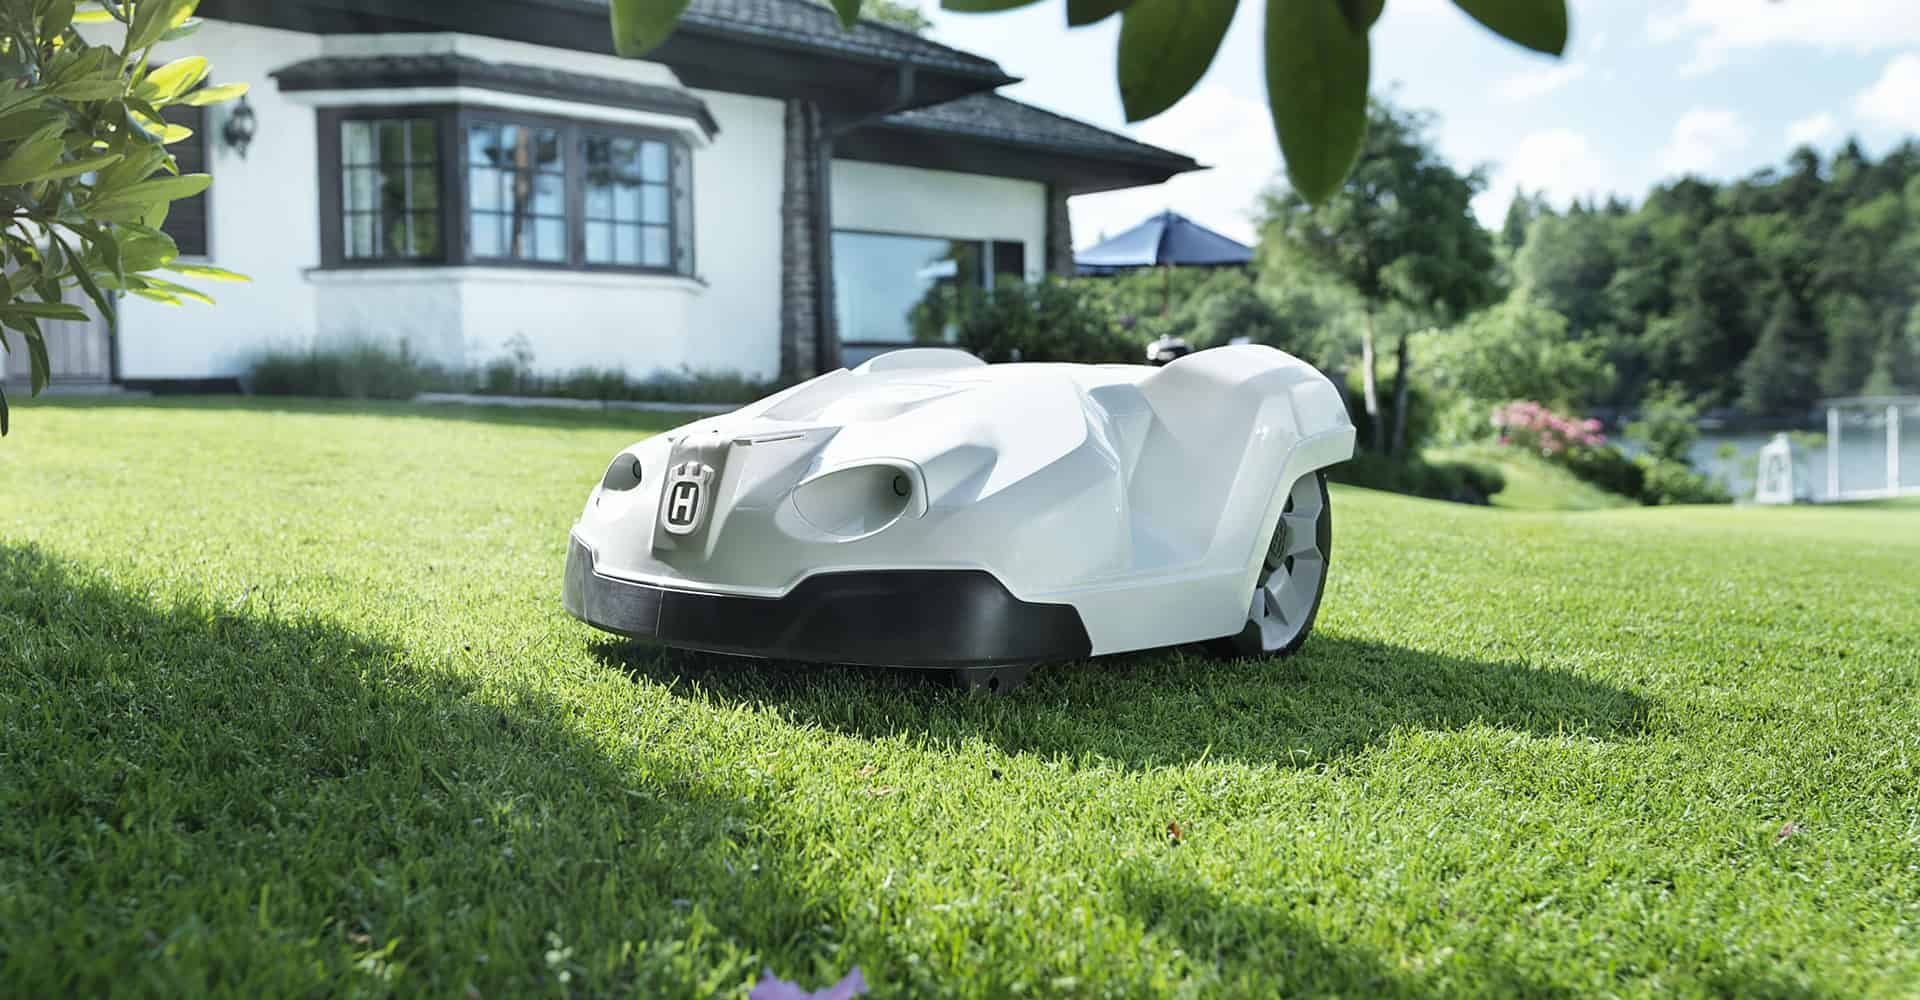 4 Best Robot Lawn Mowers In 2019 Robotic Lawn Mower Reviews